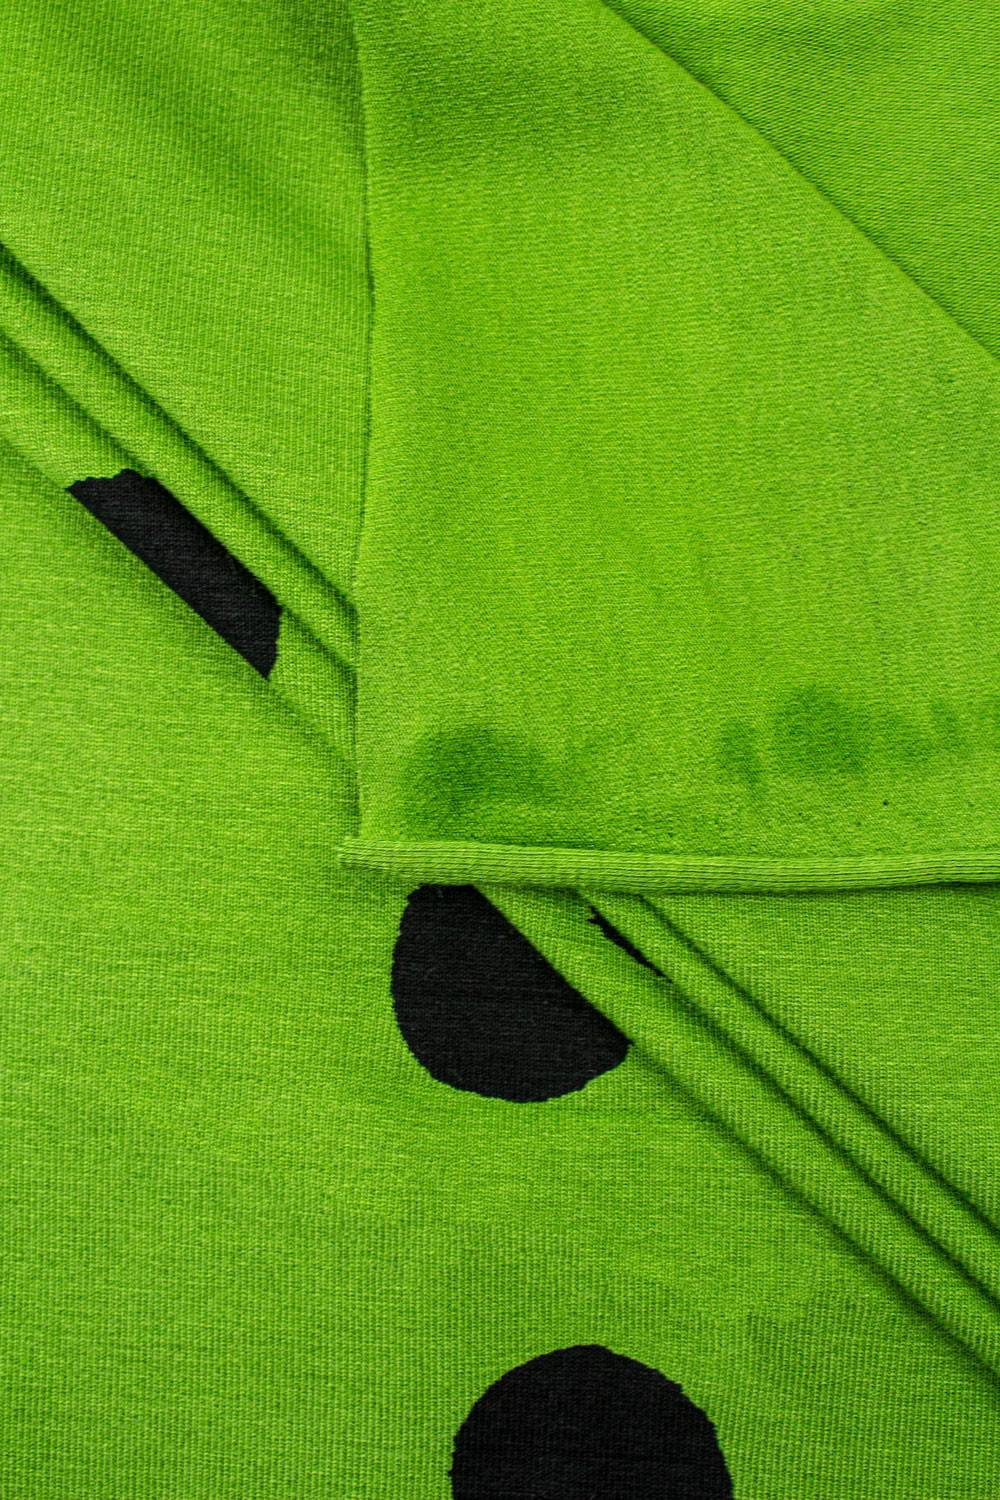 Knit - Viscose Jersey - Pea Green With Big Black Ink Spots - 160 cm - 200 g/m2